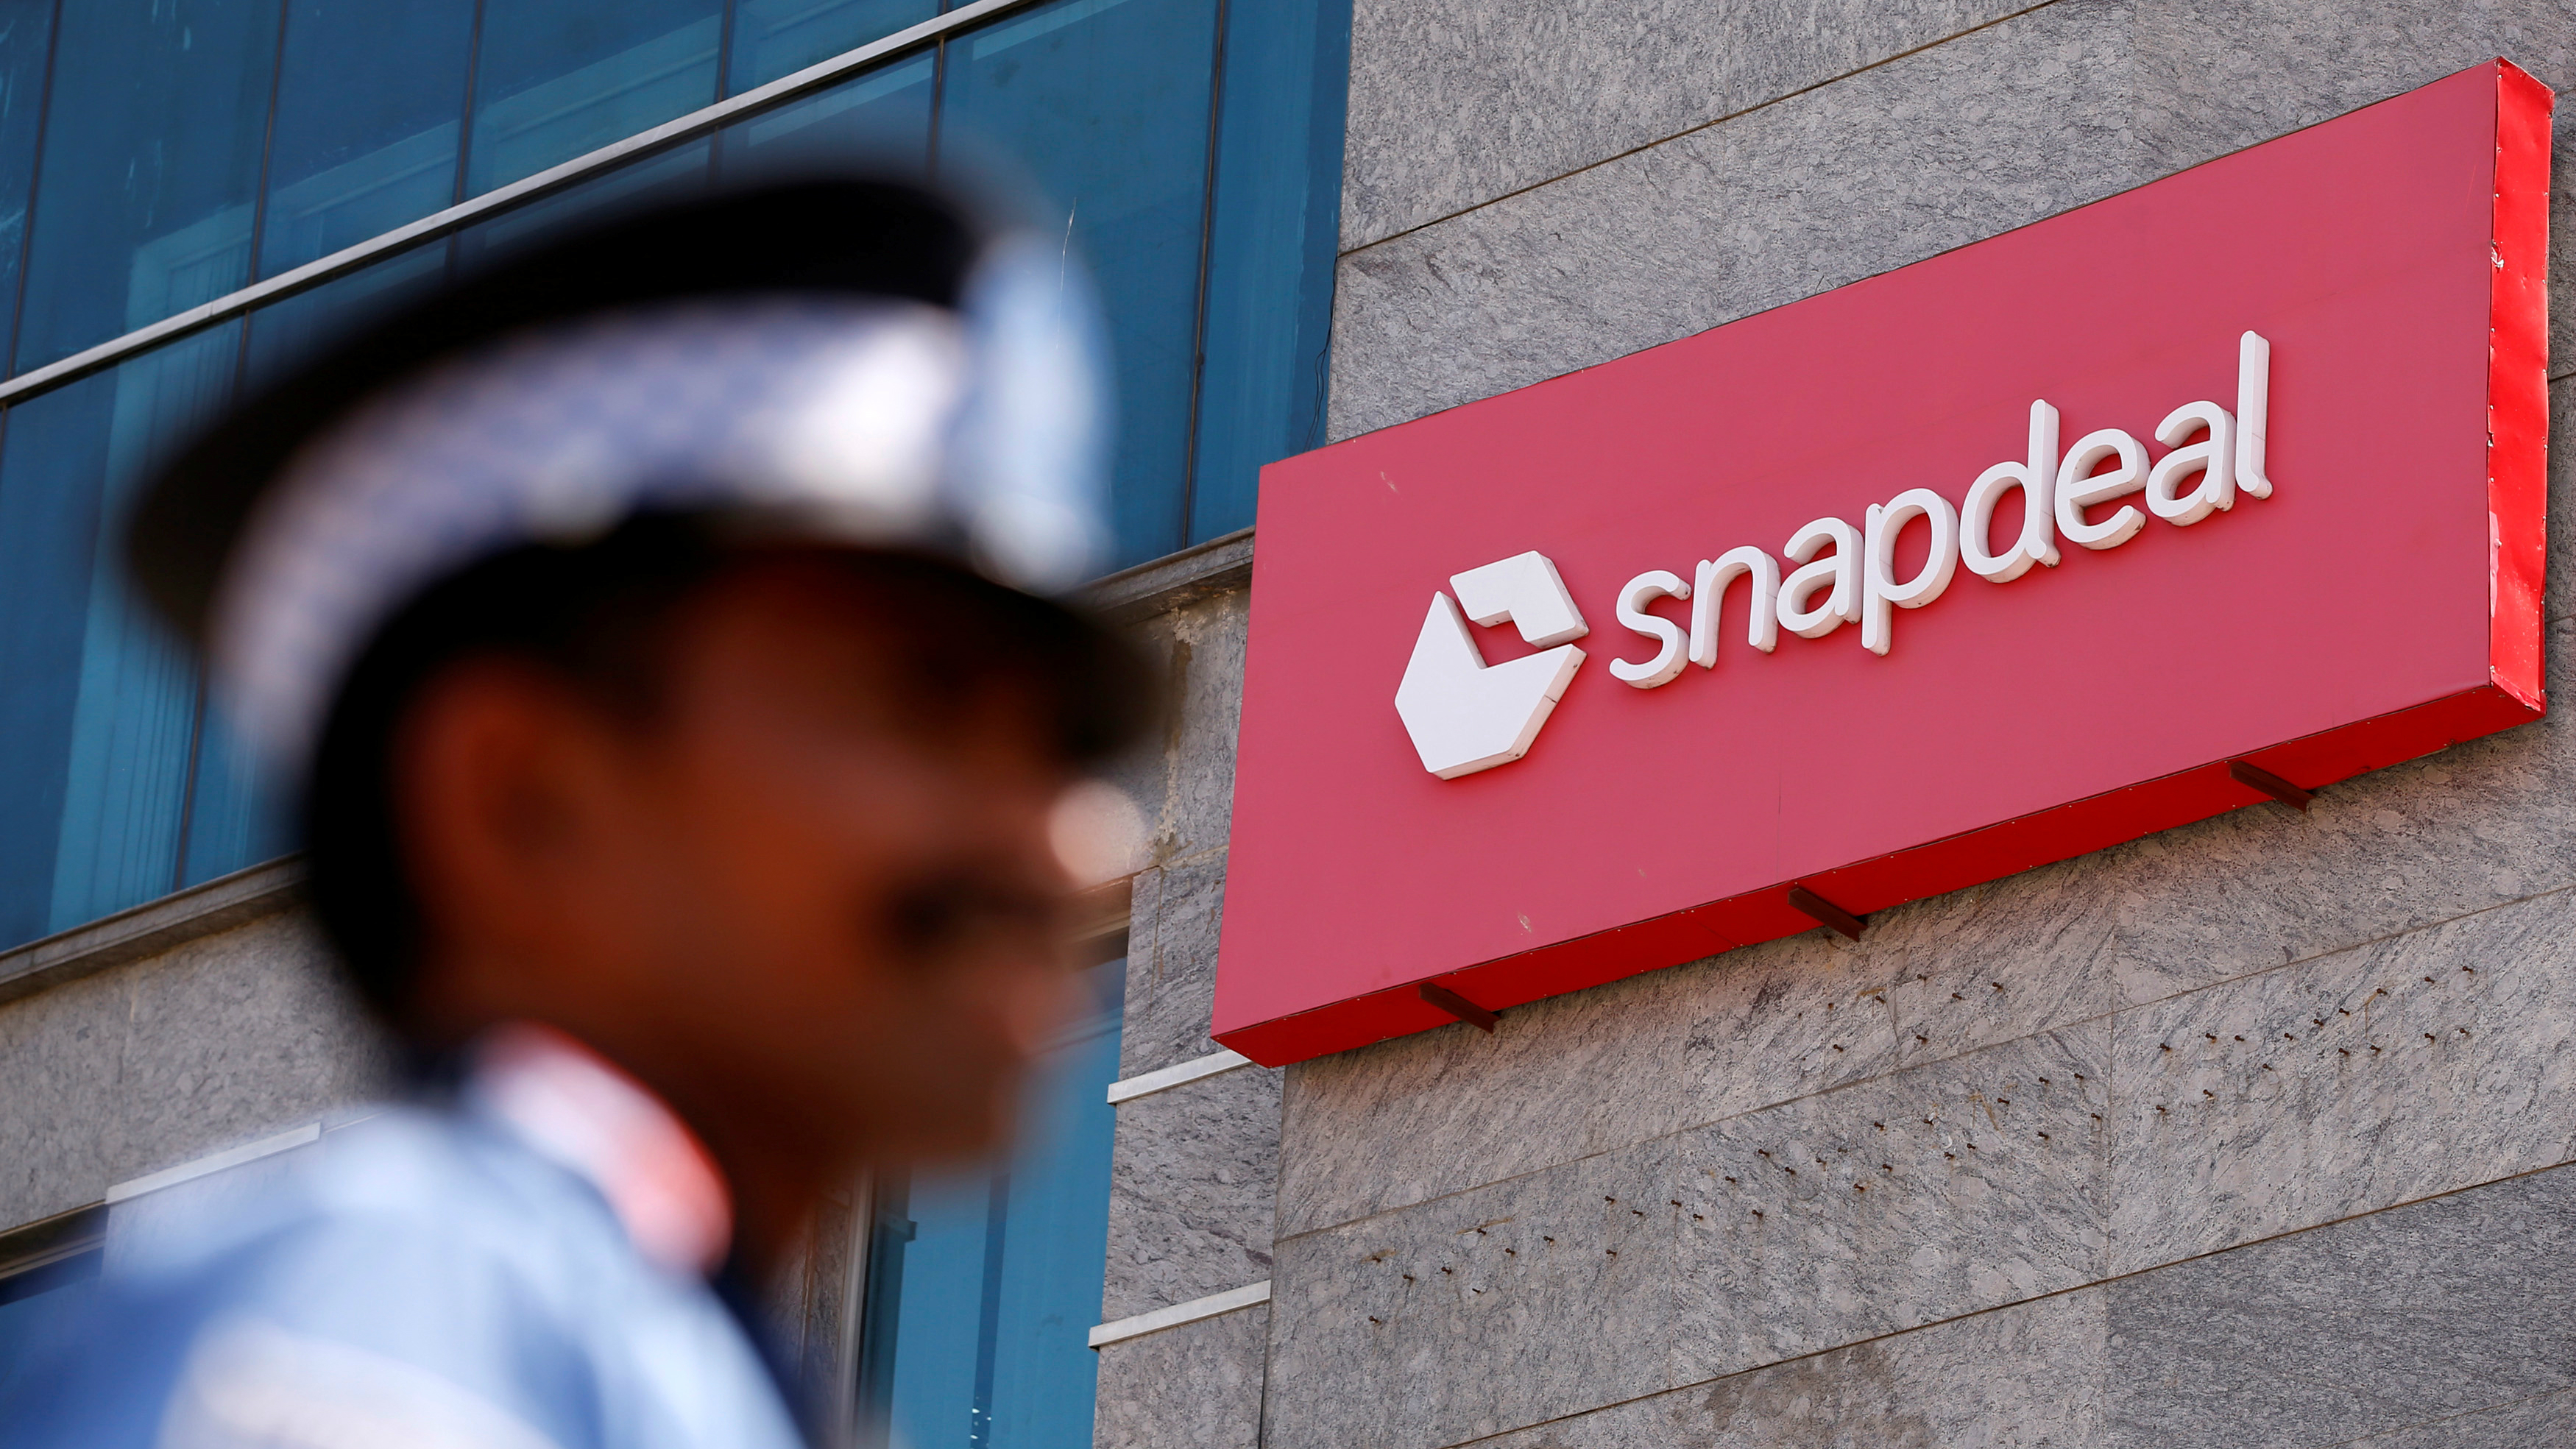 Screenshosts of com.snapdeal.main. Description of Snapdeal: Online Shopping  App